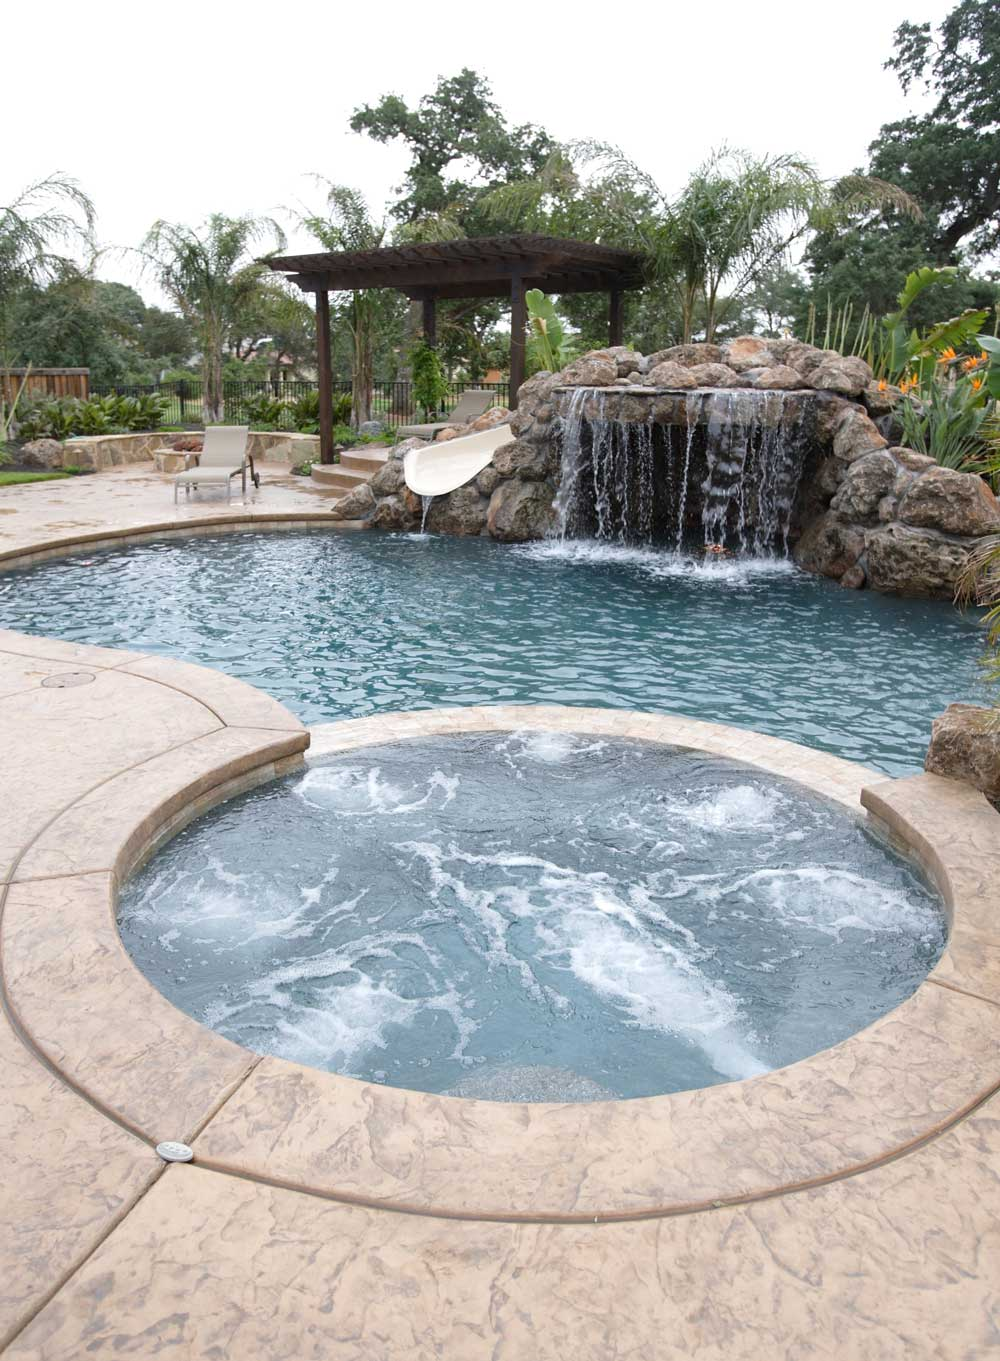 Unique pool designs hayward poolside blog for Water pool design